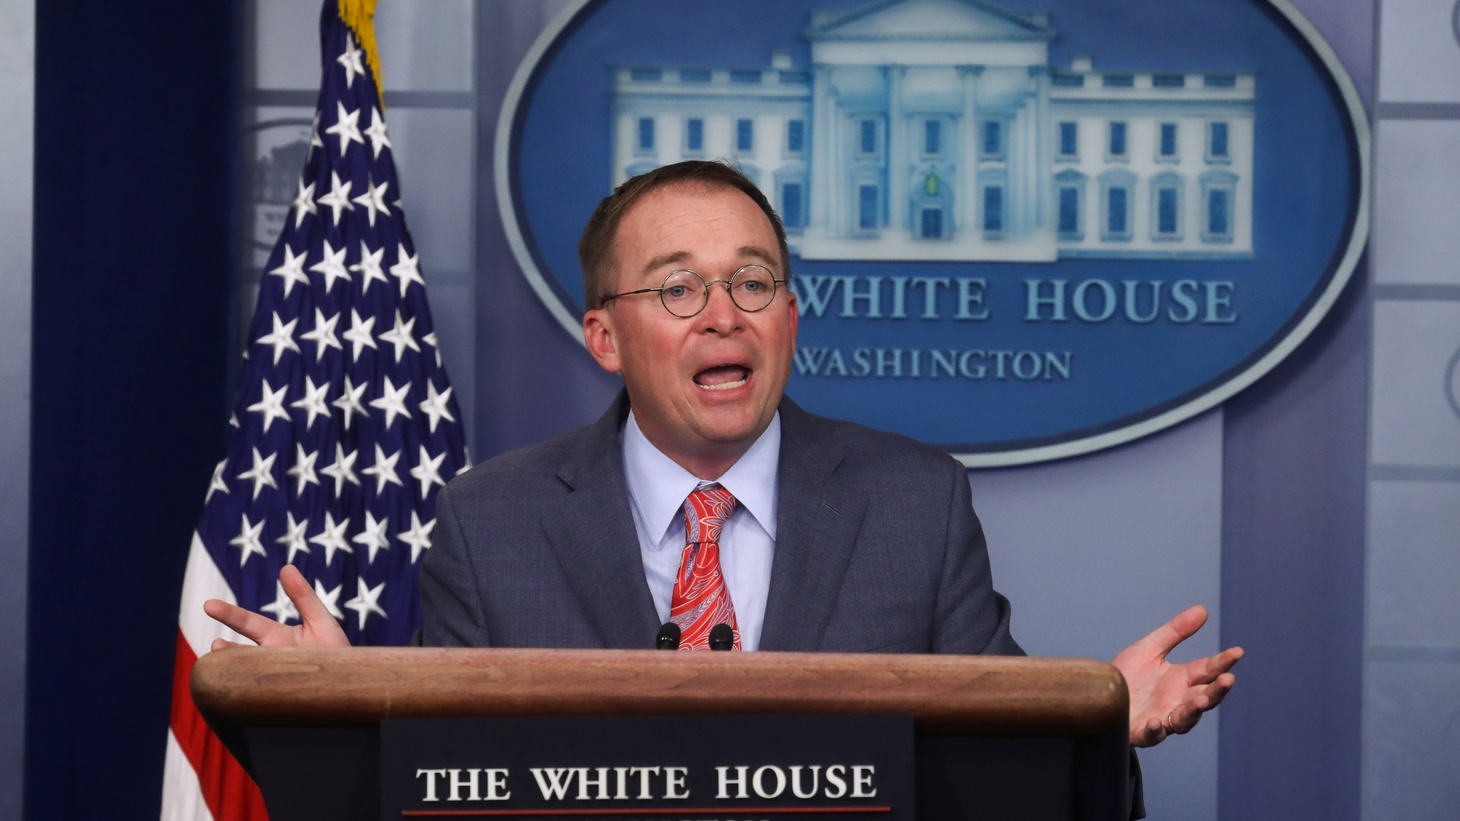 Acting White House Chief of Staff Mick Mulvaney answers questions from reporters during a news briefing at the White House in Washington, U.S., October 17, 2019.